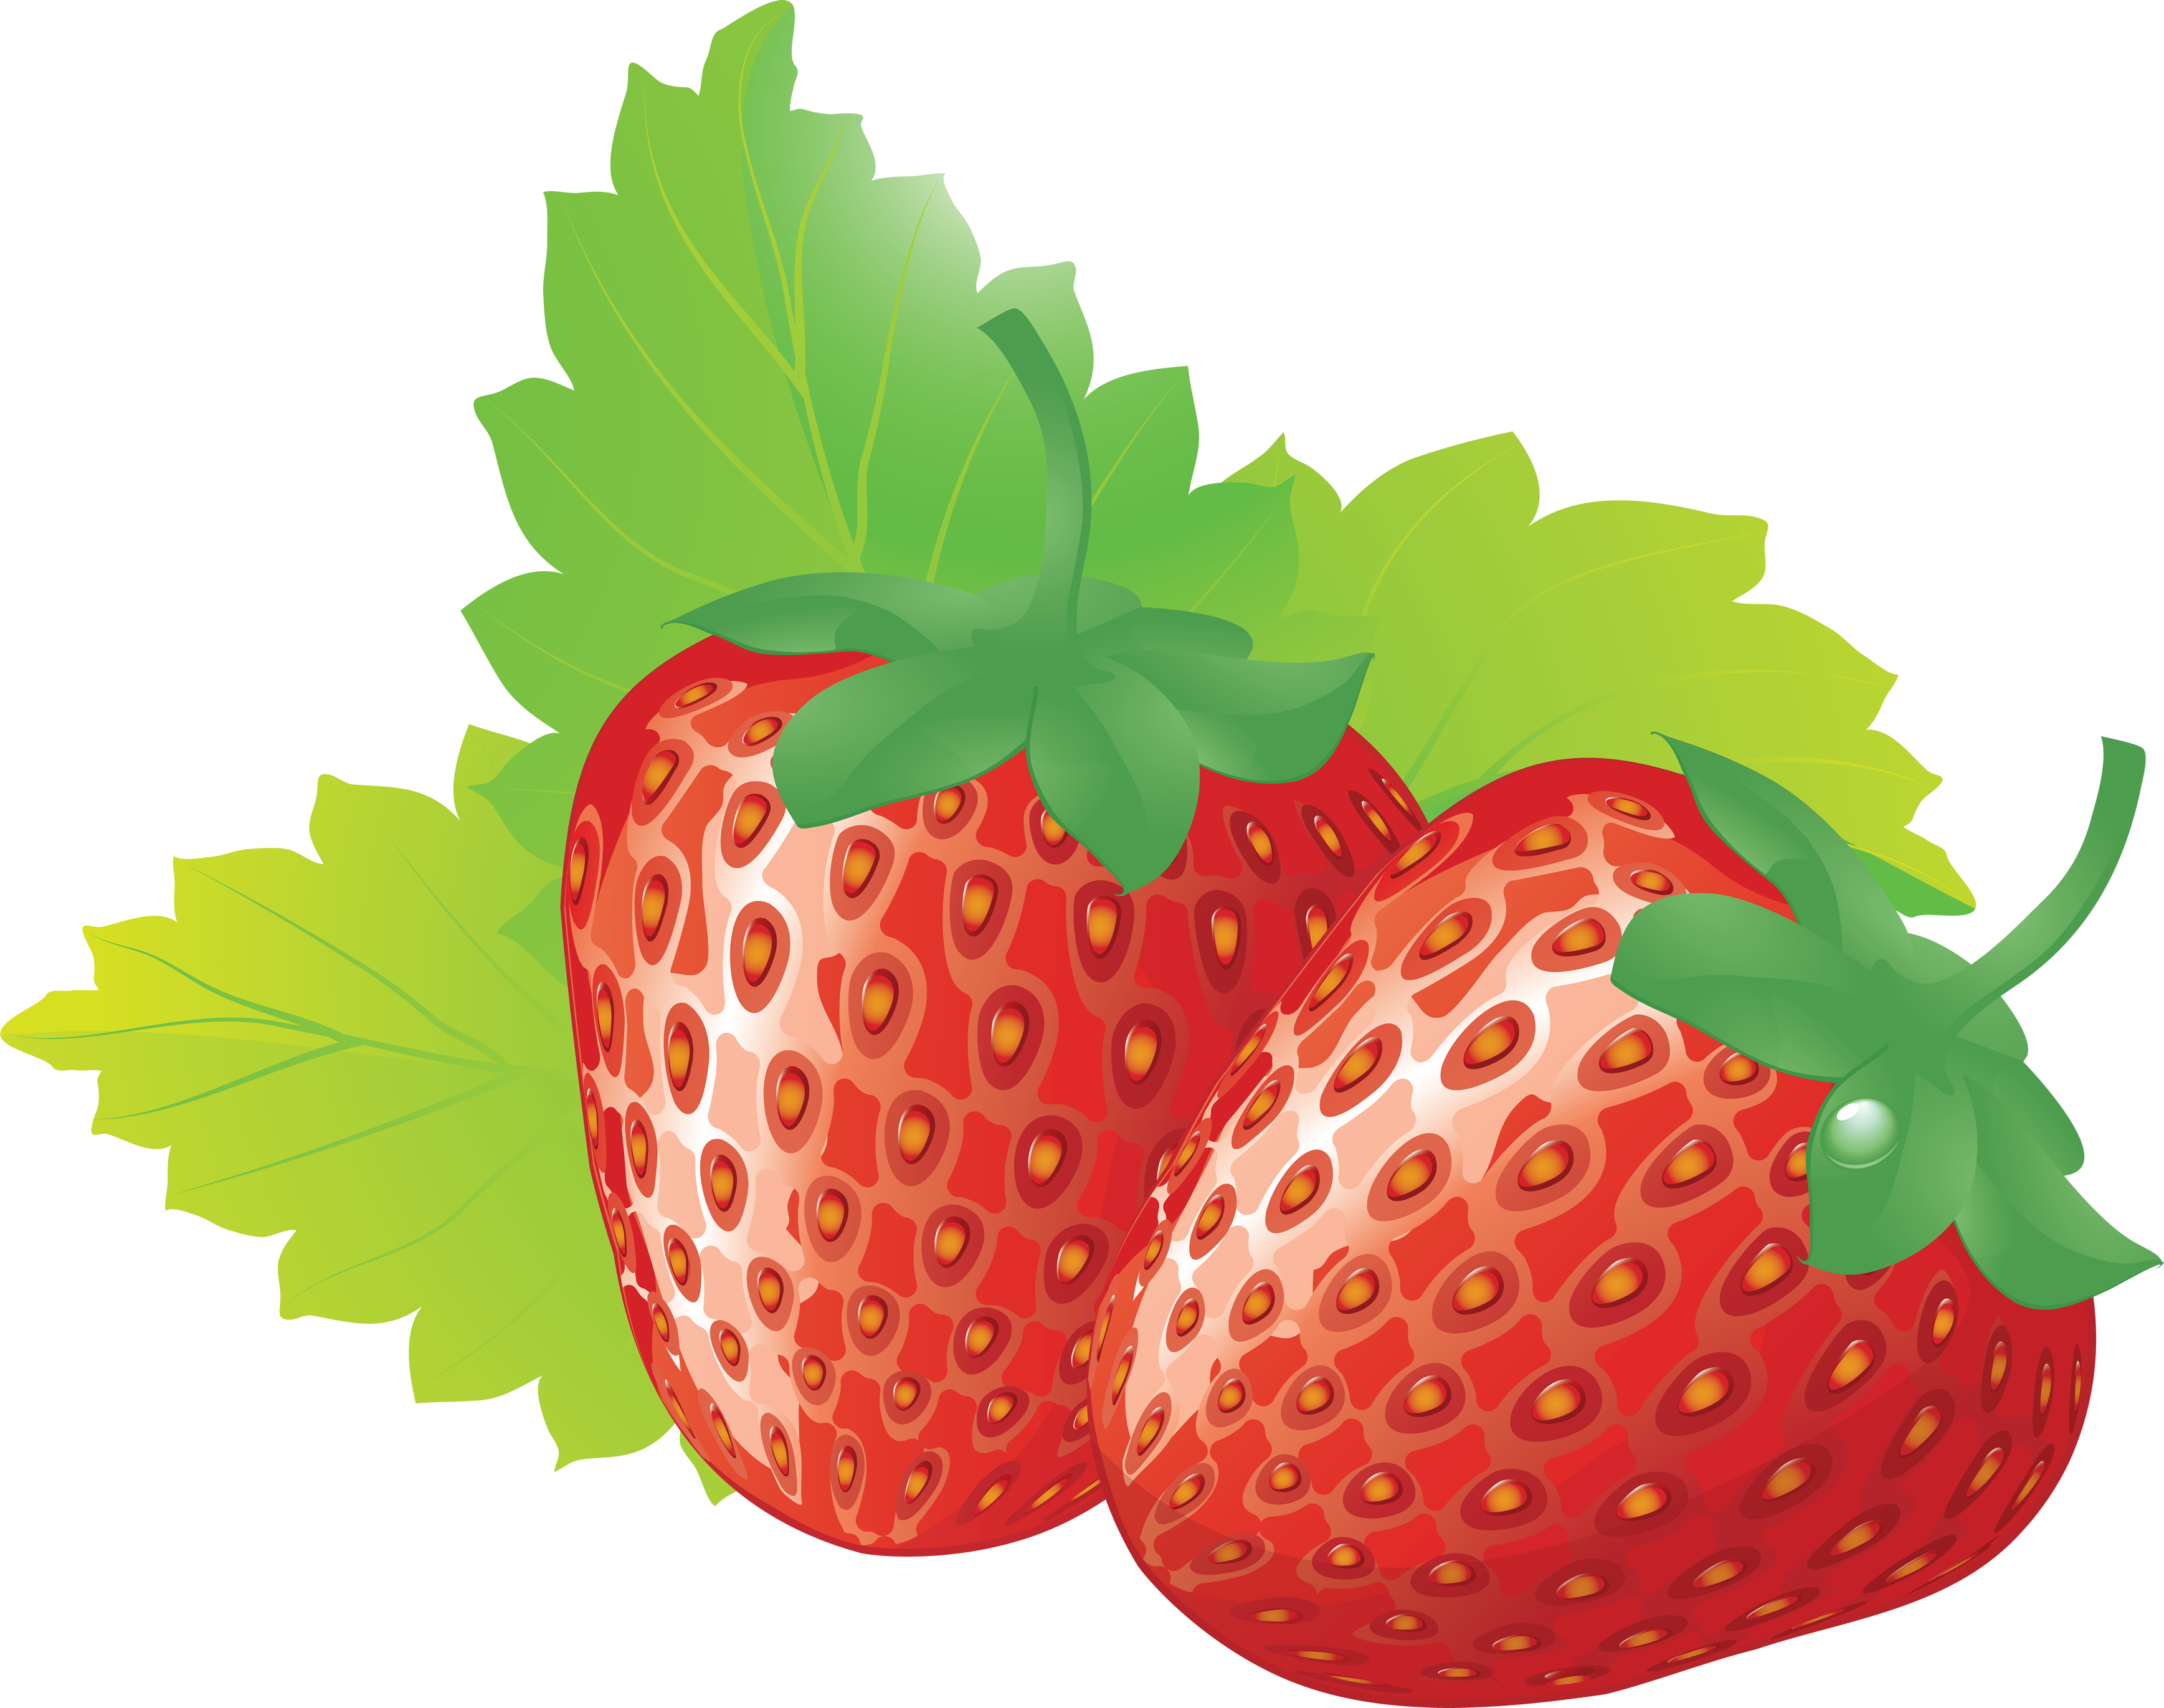 Image freeuse library strawberry. Strawberries clipart freshness